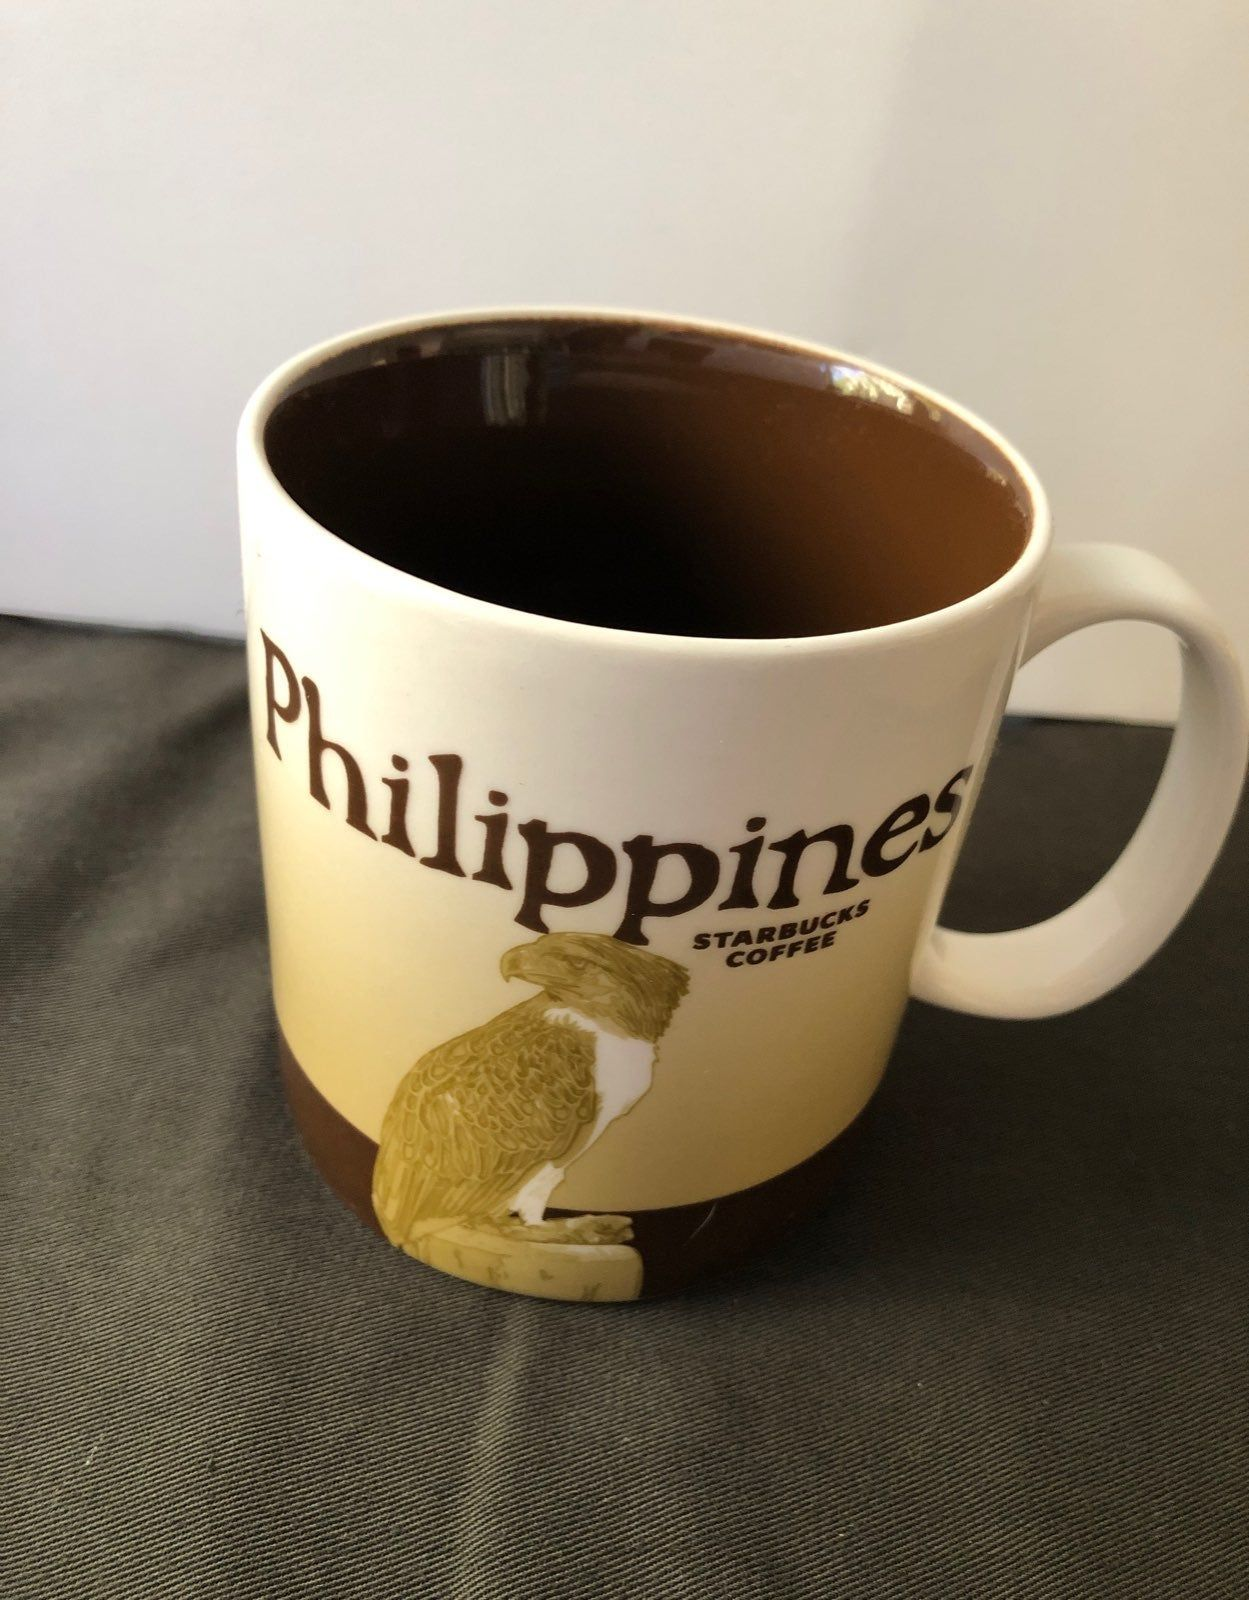 Literally from the Philippines, no chips! Starbucks cups